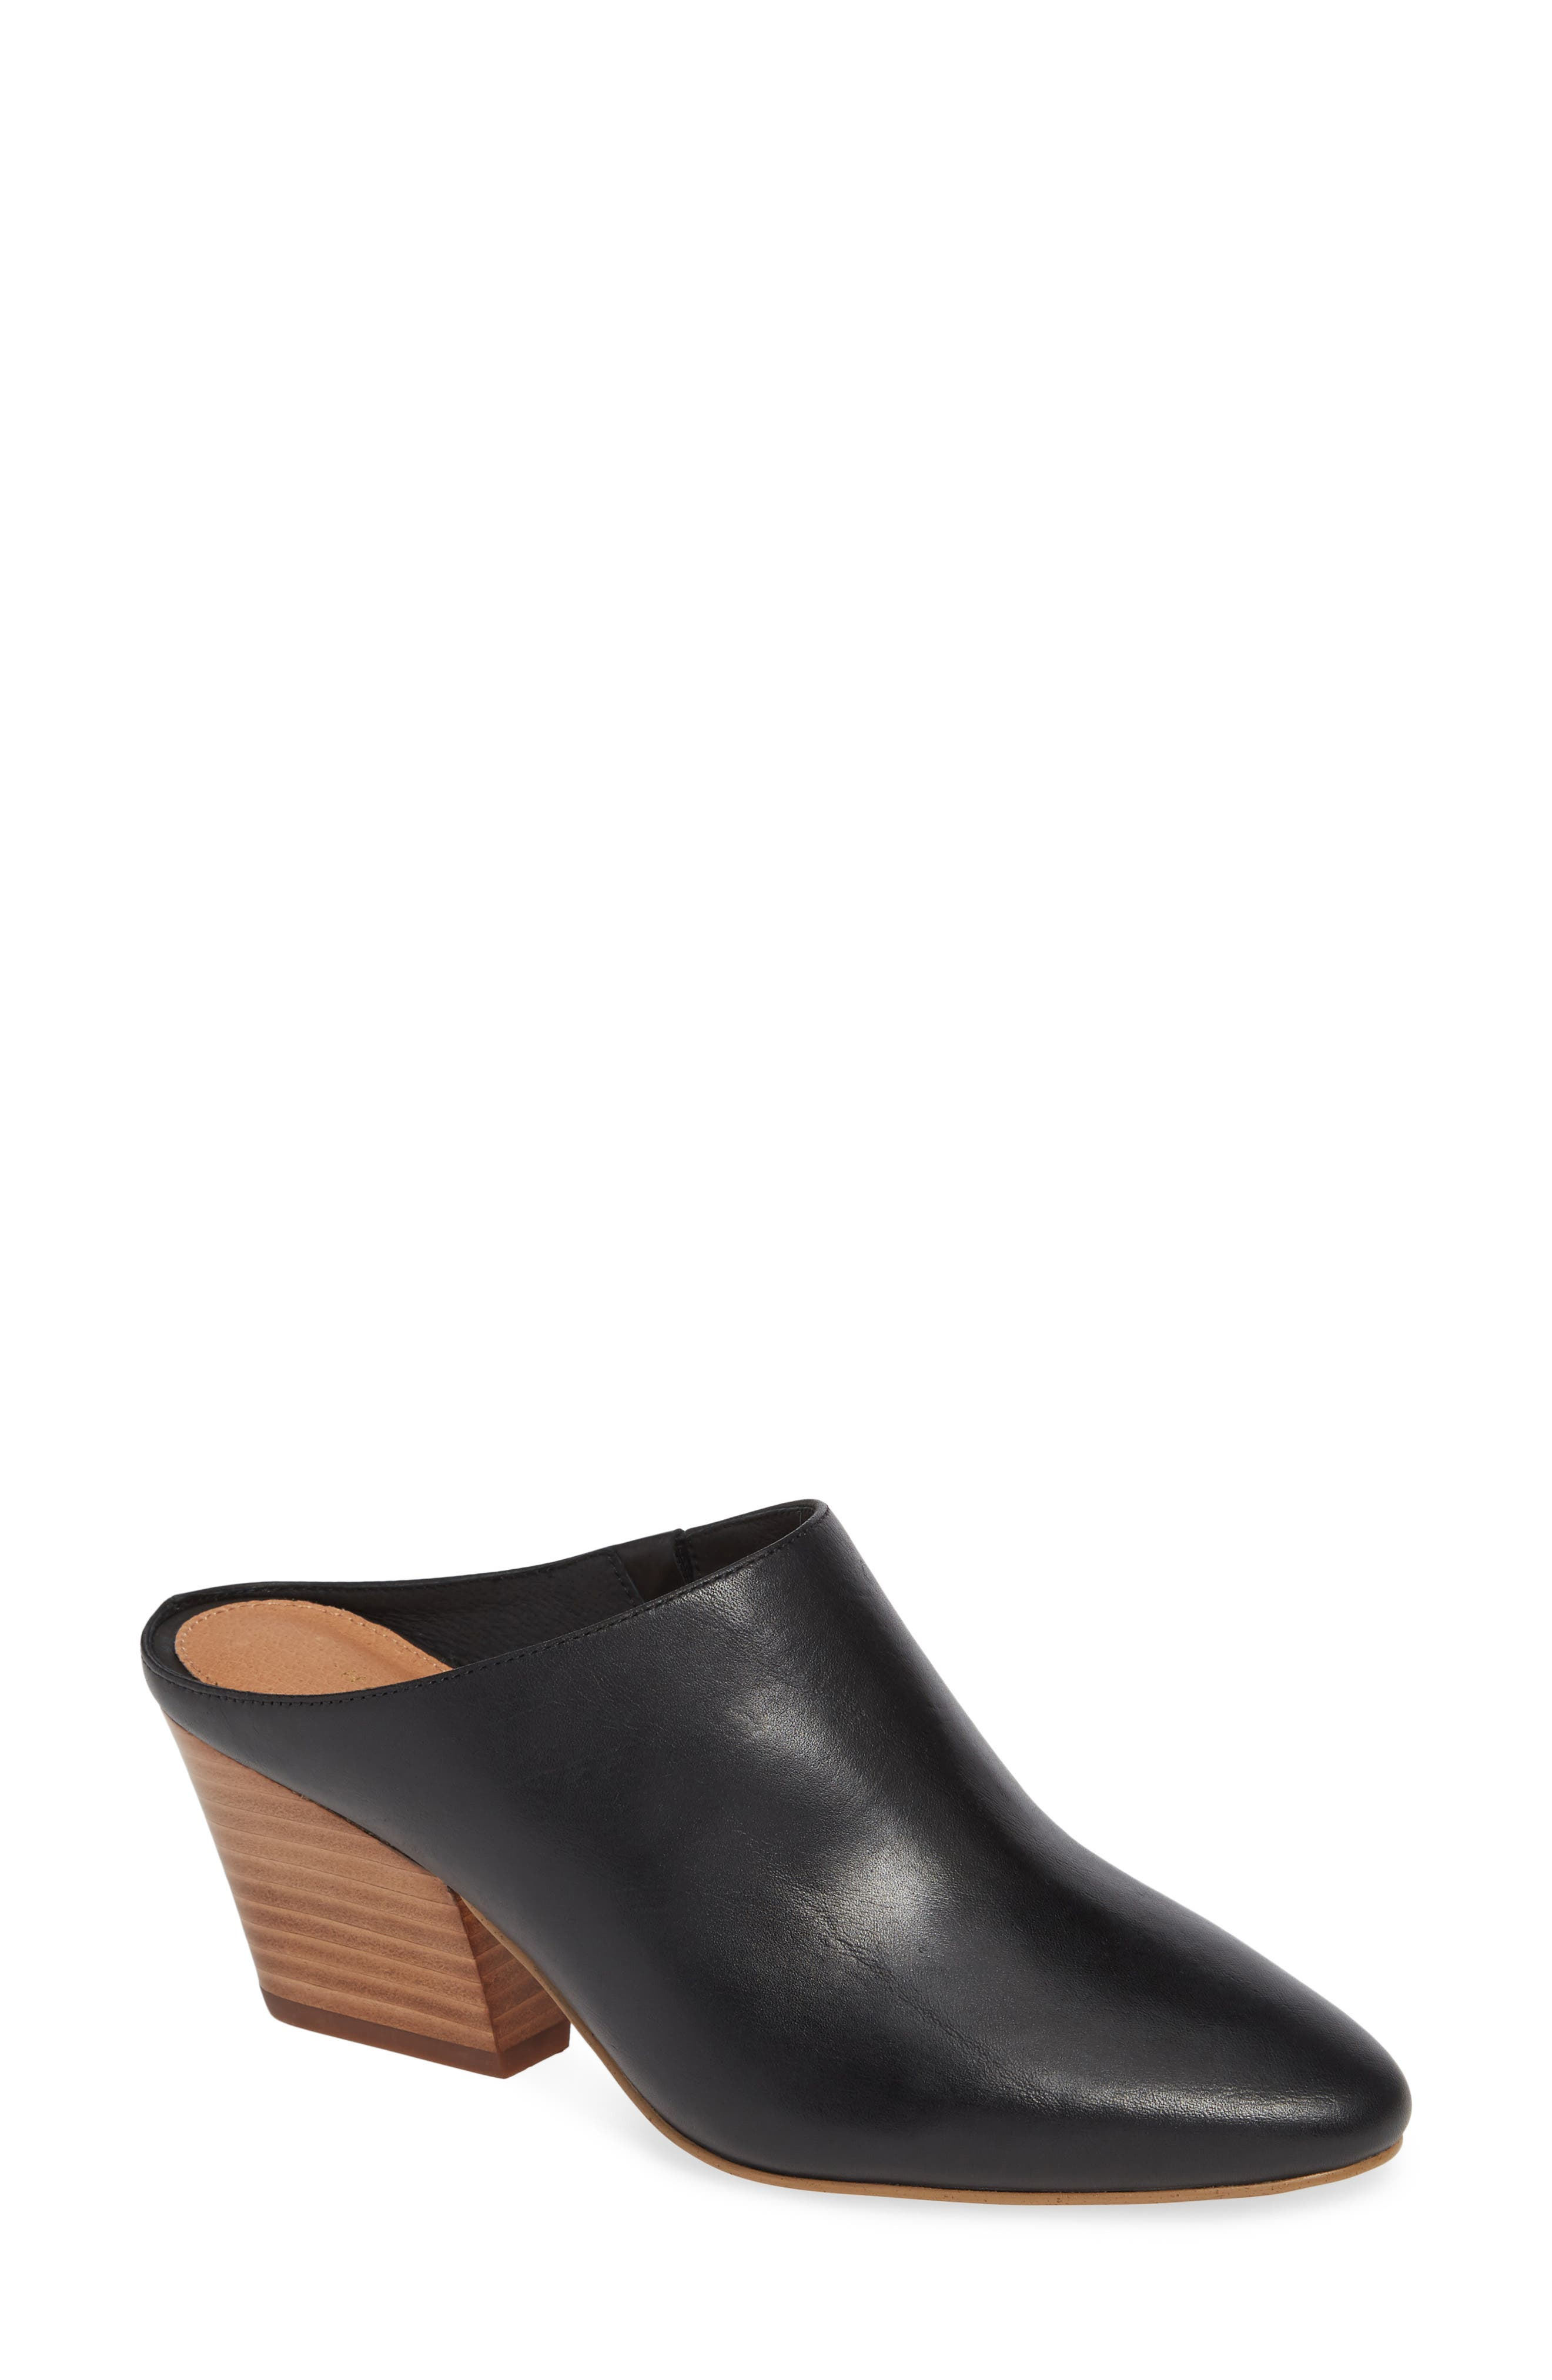 HALOGEN<SUP>®</SUP>, Brielle Mule, Main thumbnail 1, color, BLACK LEATHER